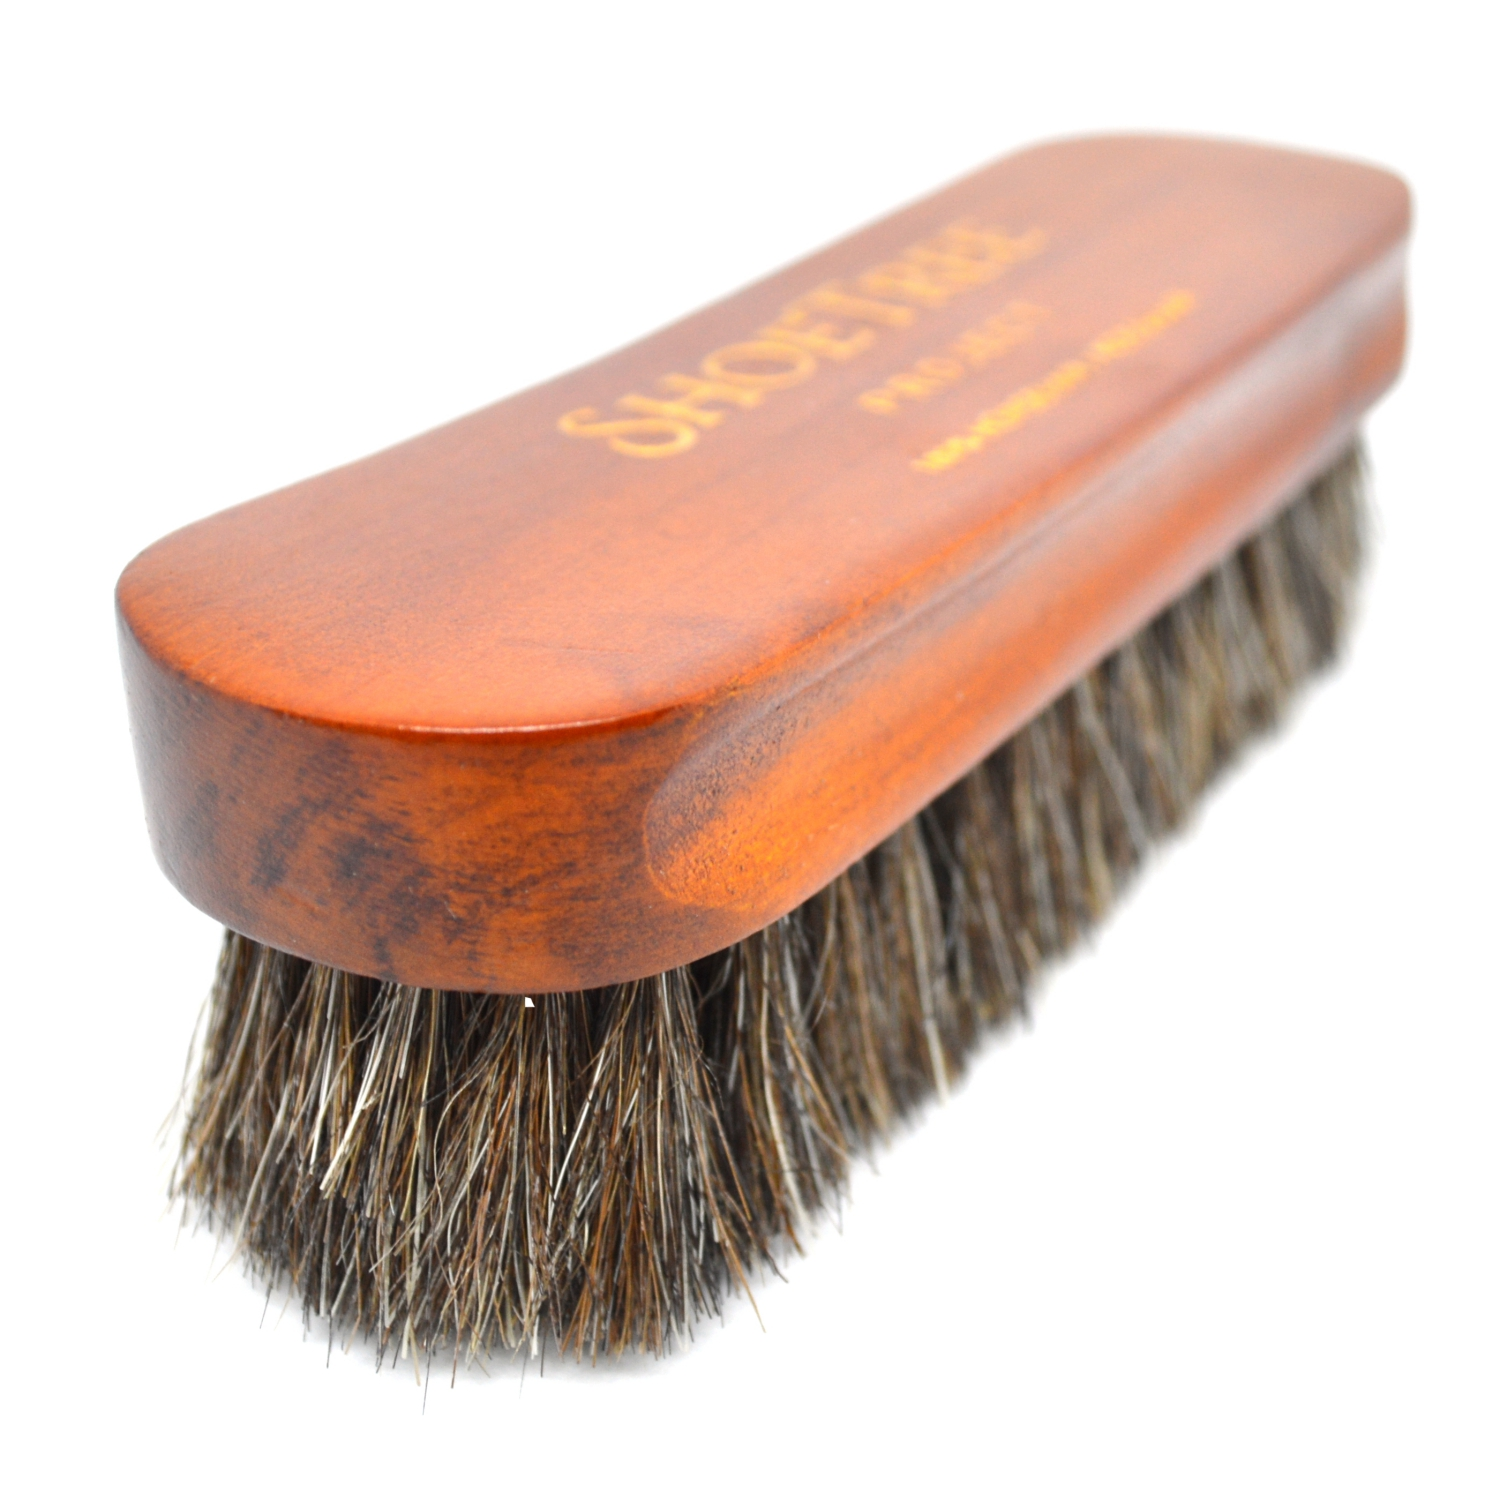 Horse Hair Shoe Buffing Brush handle